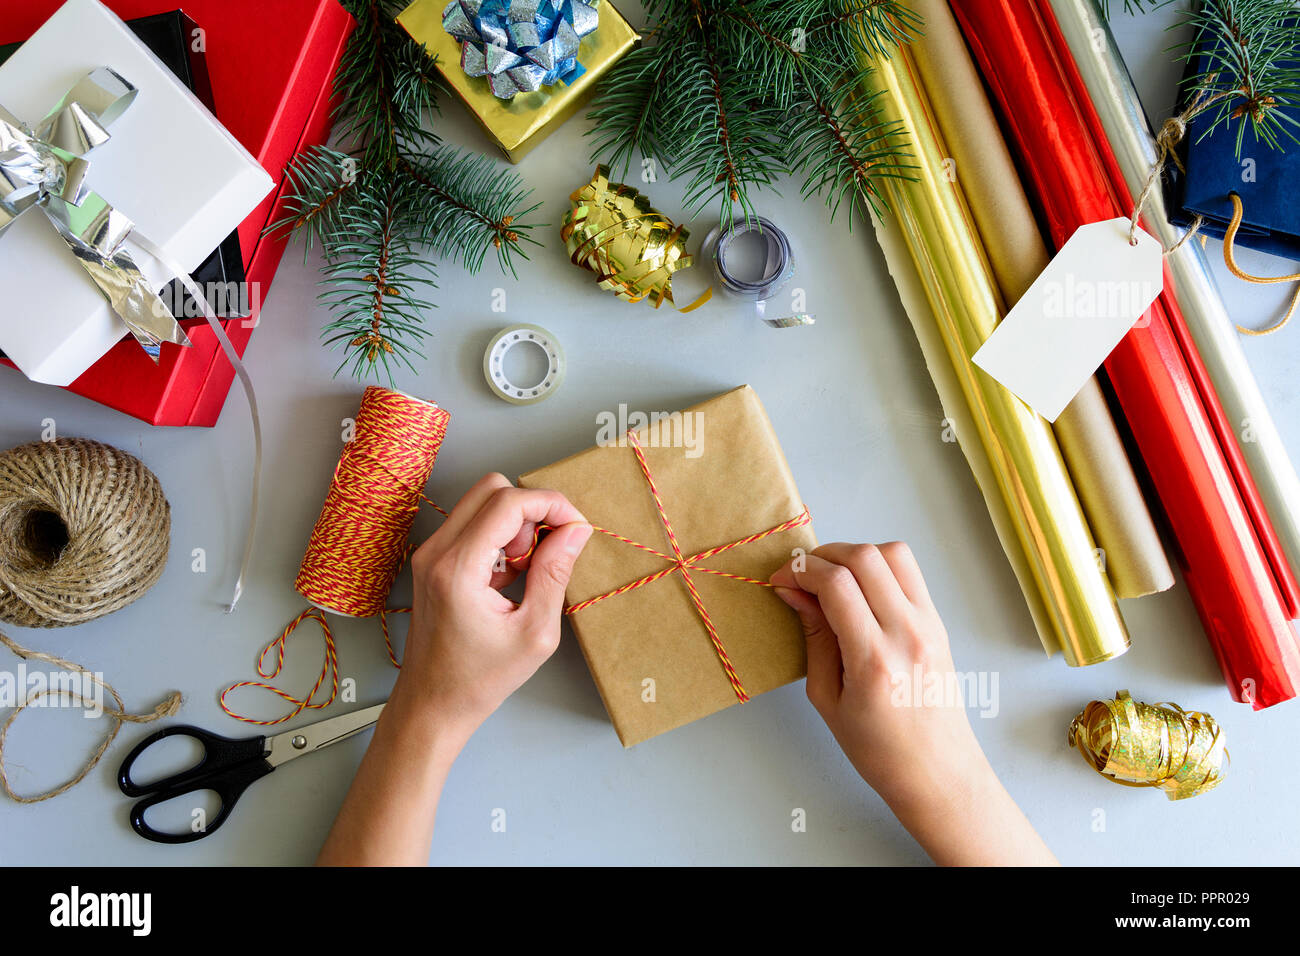 womans hands decorate present box on gray wooden background new year and christmas decorations concept